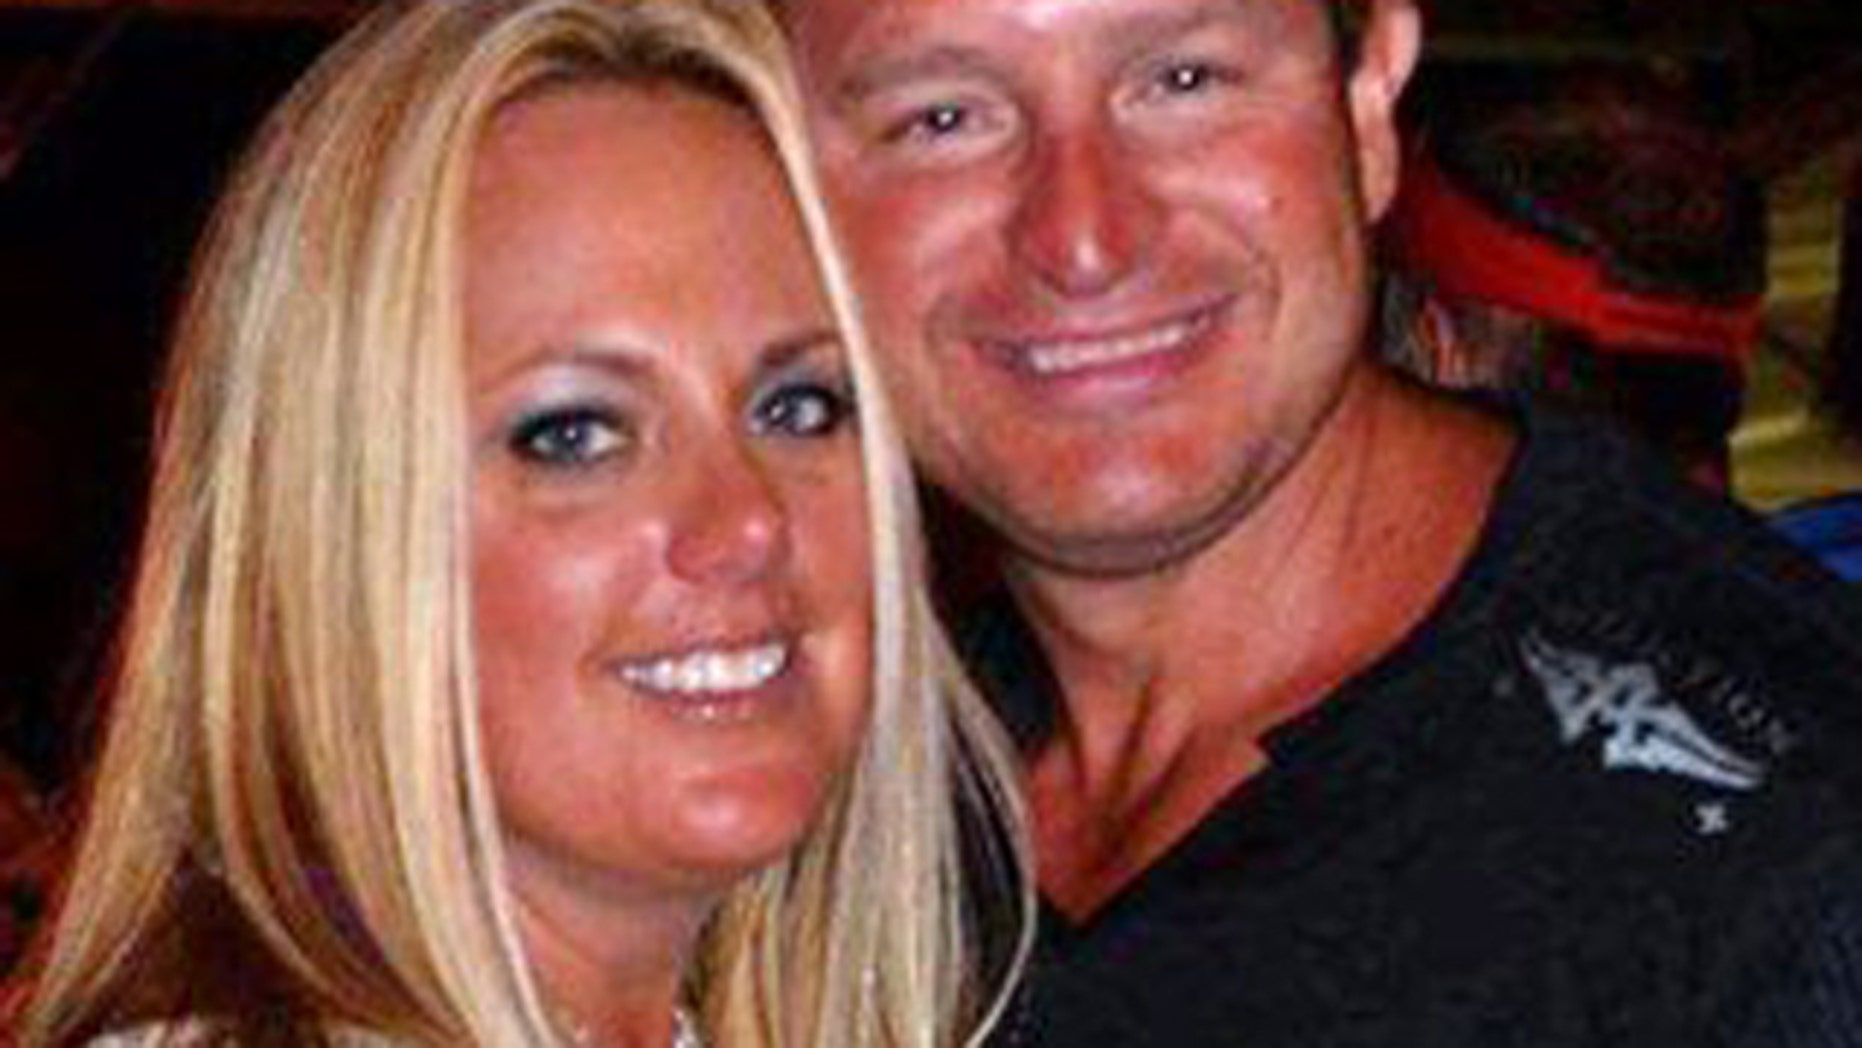 Mar. 5, 2012: This photo shows Joe Decker with his 36-year-old wife, Stephanie Decker.